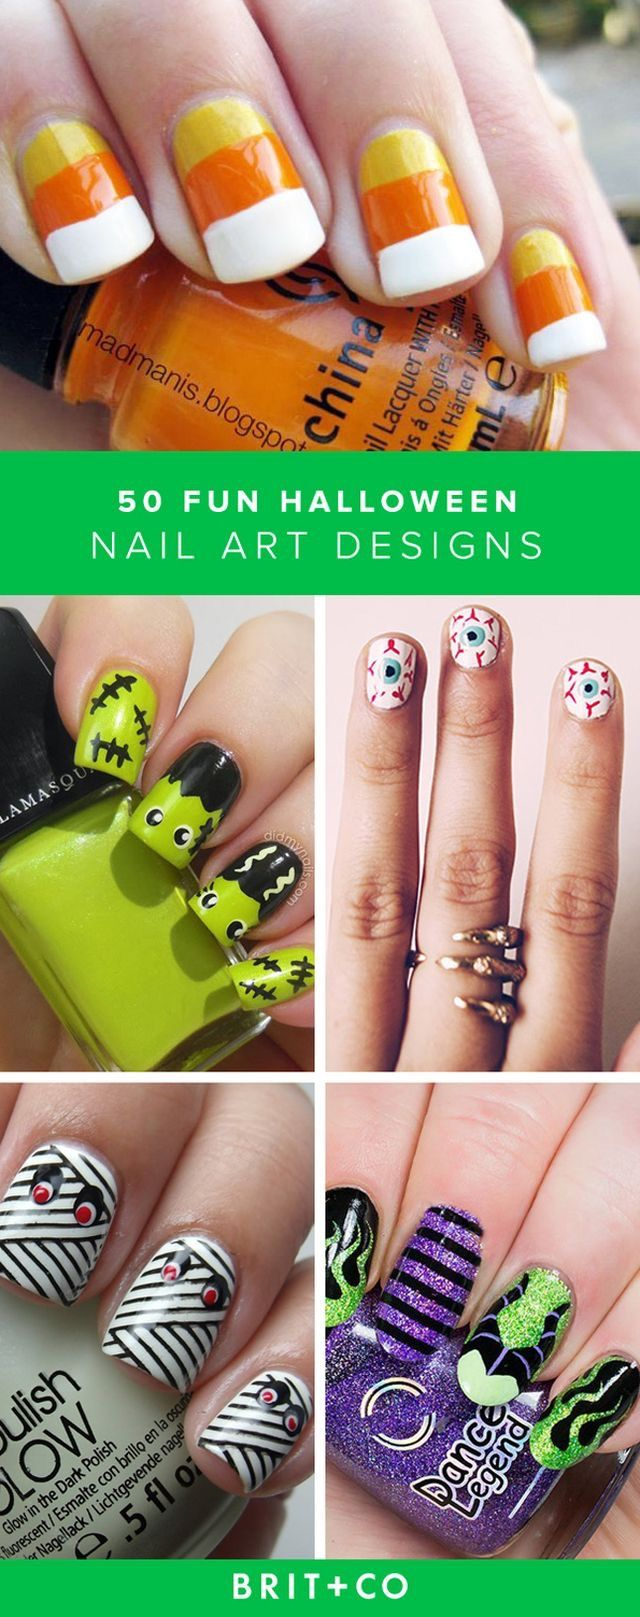 41 best Nail Harmony Summer Selfie images on Pinterest | Nail ...